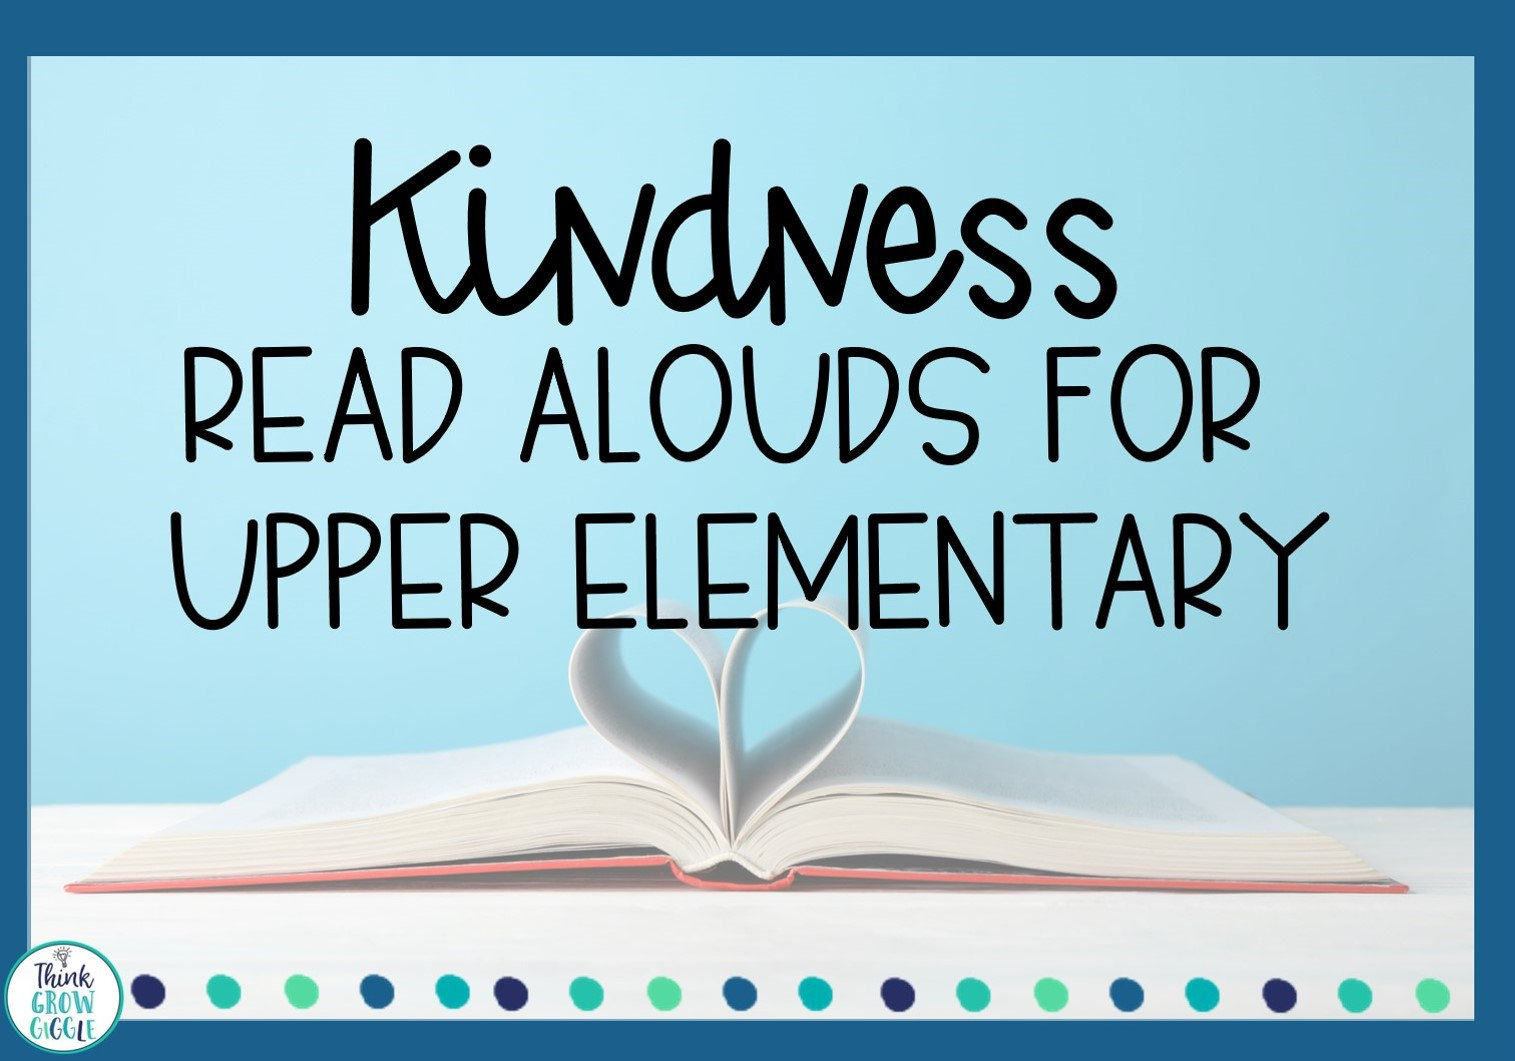 kindness picture books upper elementary